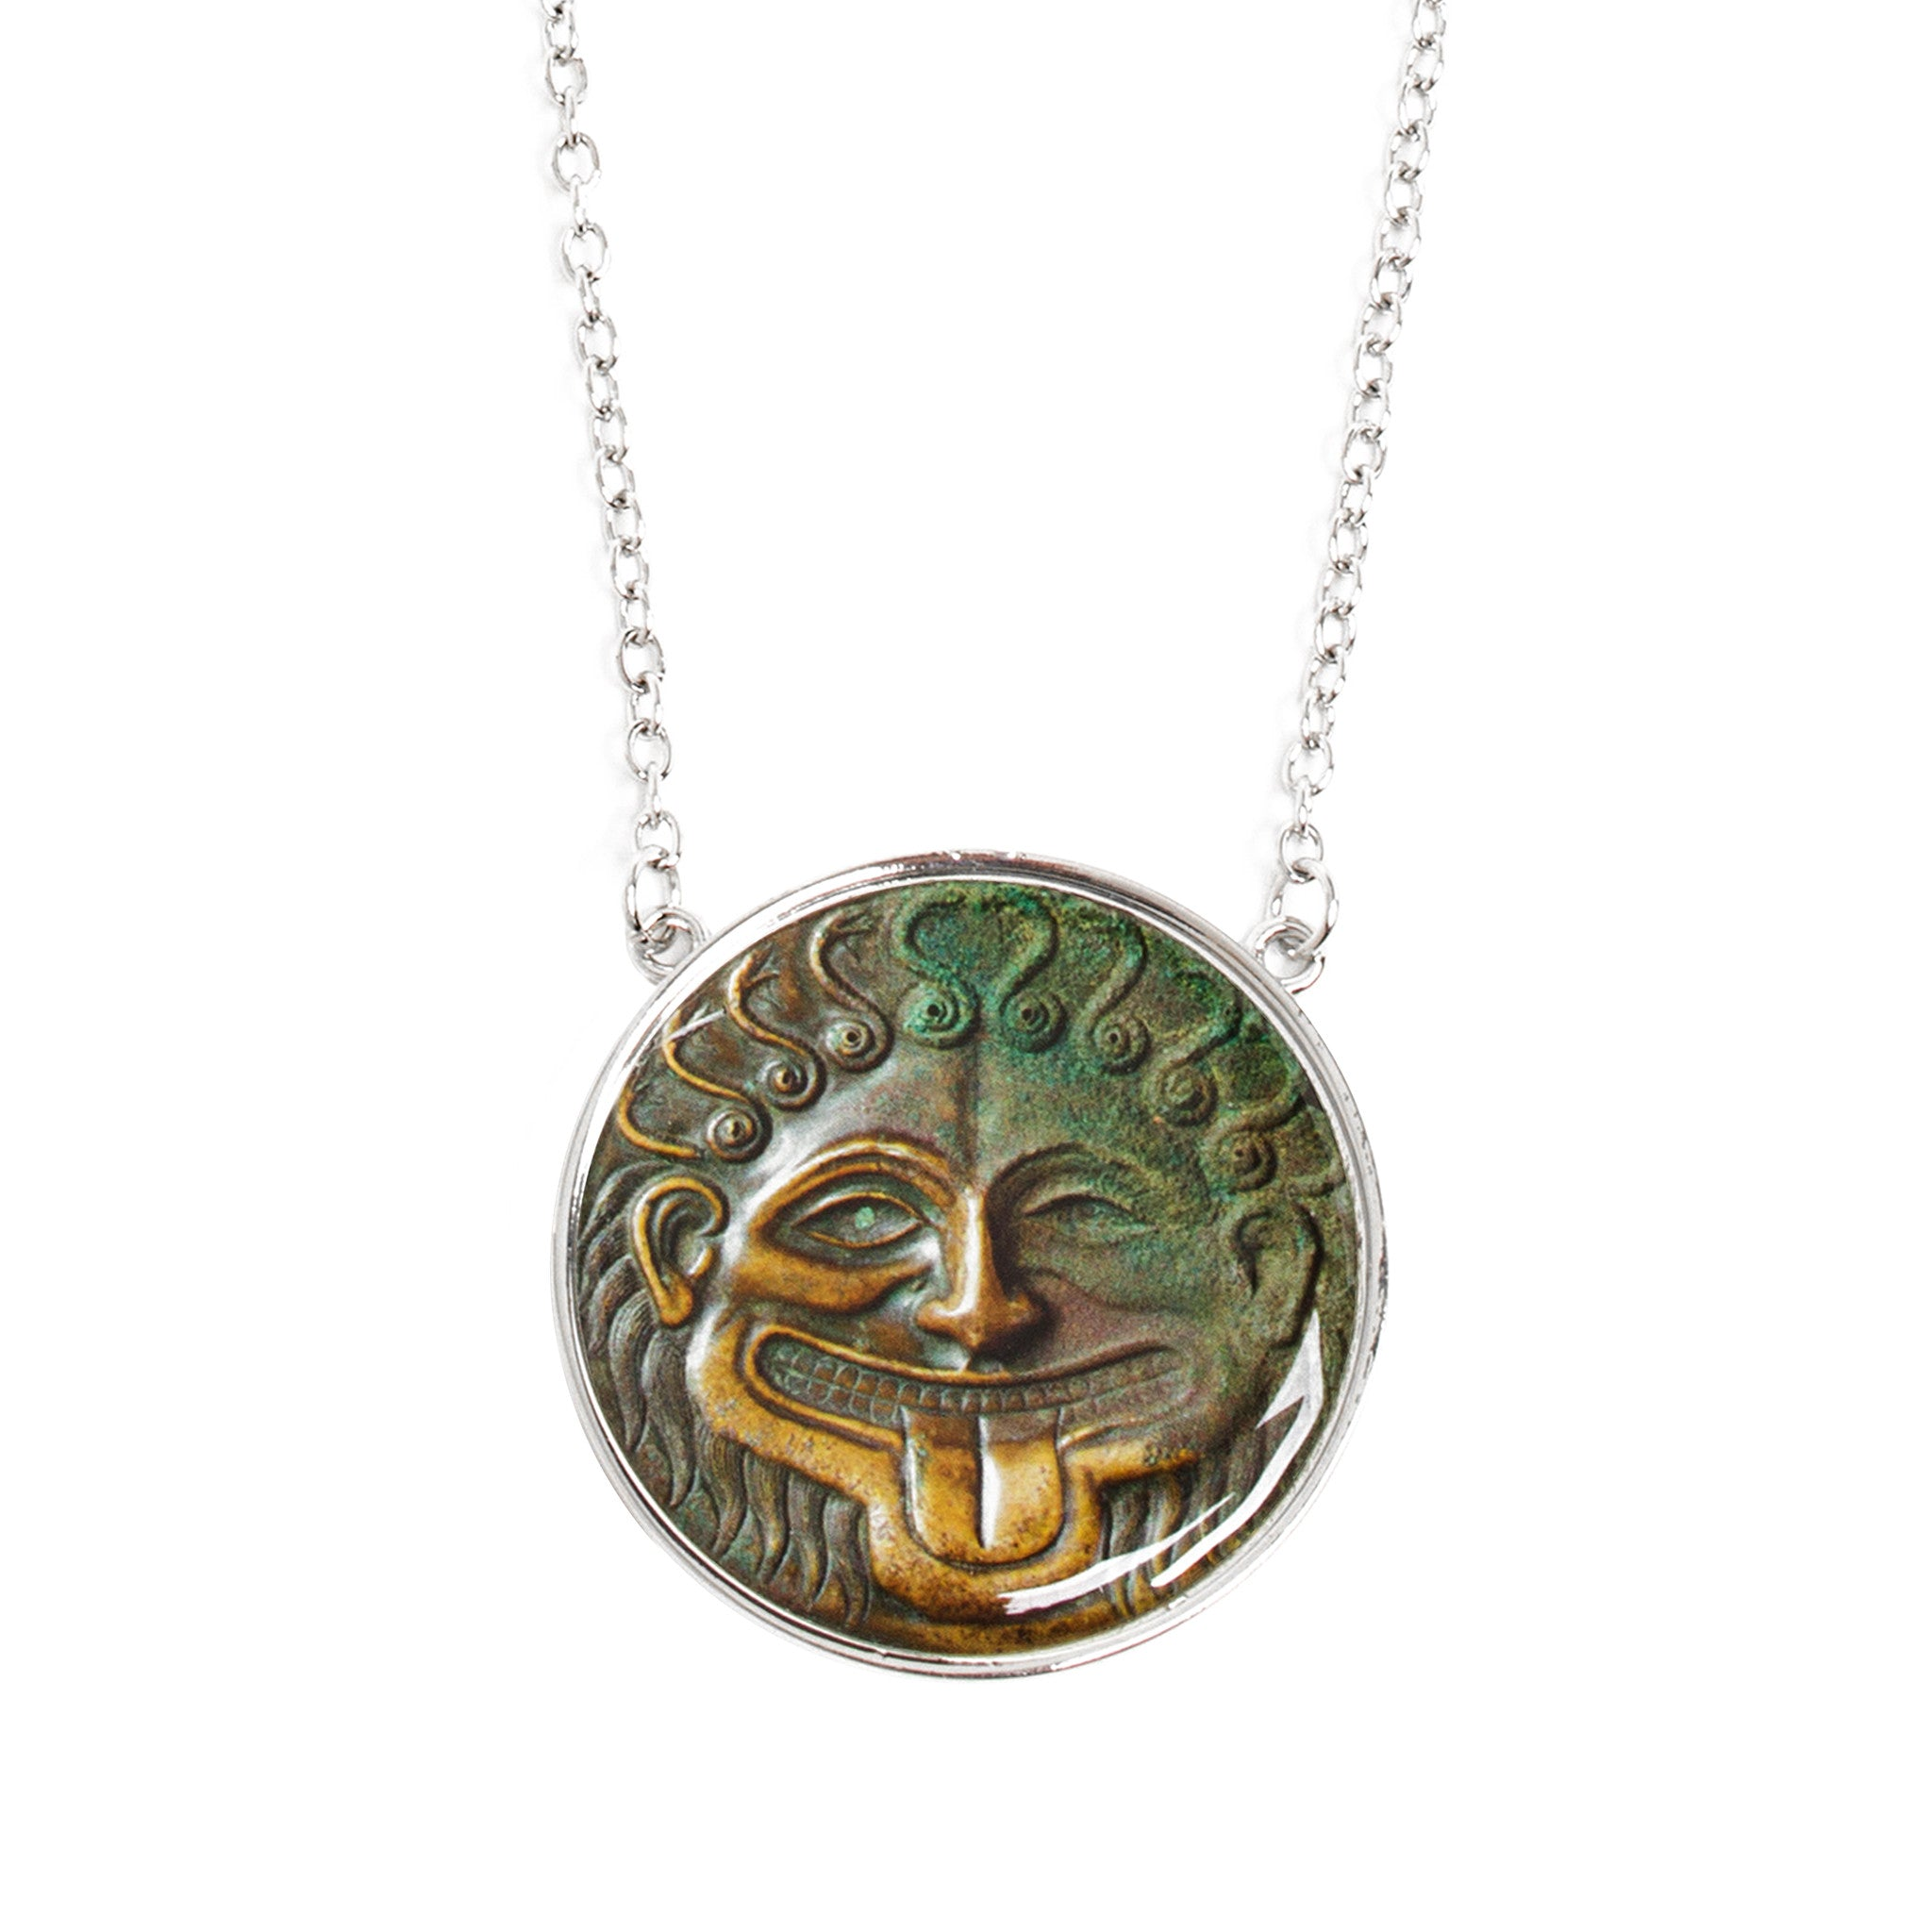 Medusa pendant necklace the getty store medusa pendant necklace mozeypictures